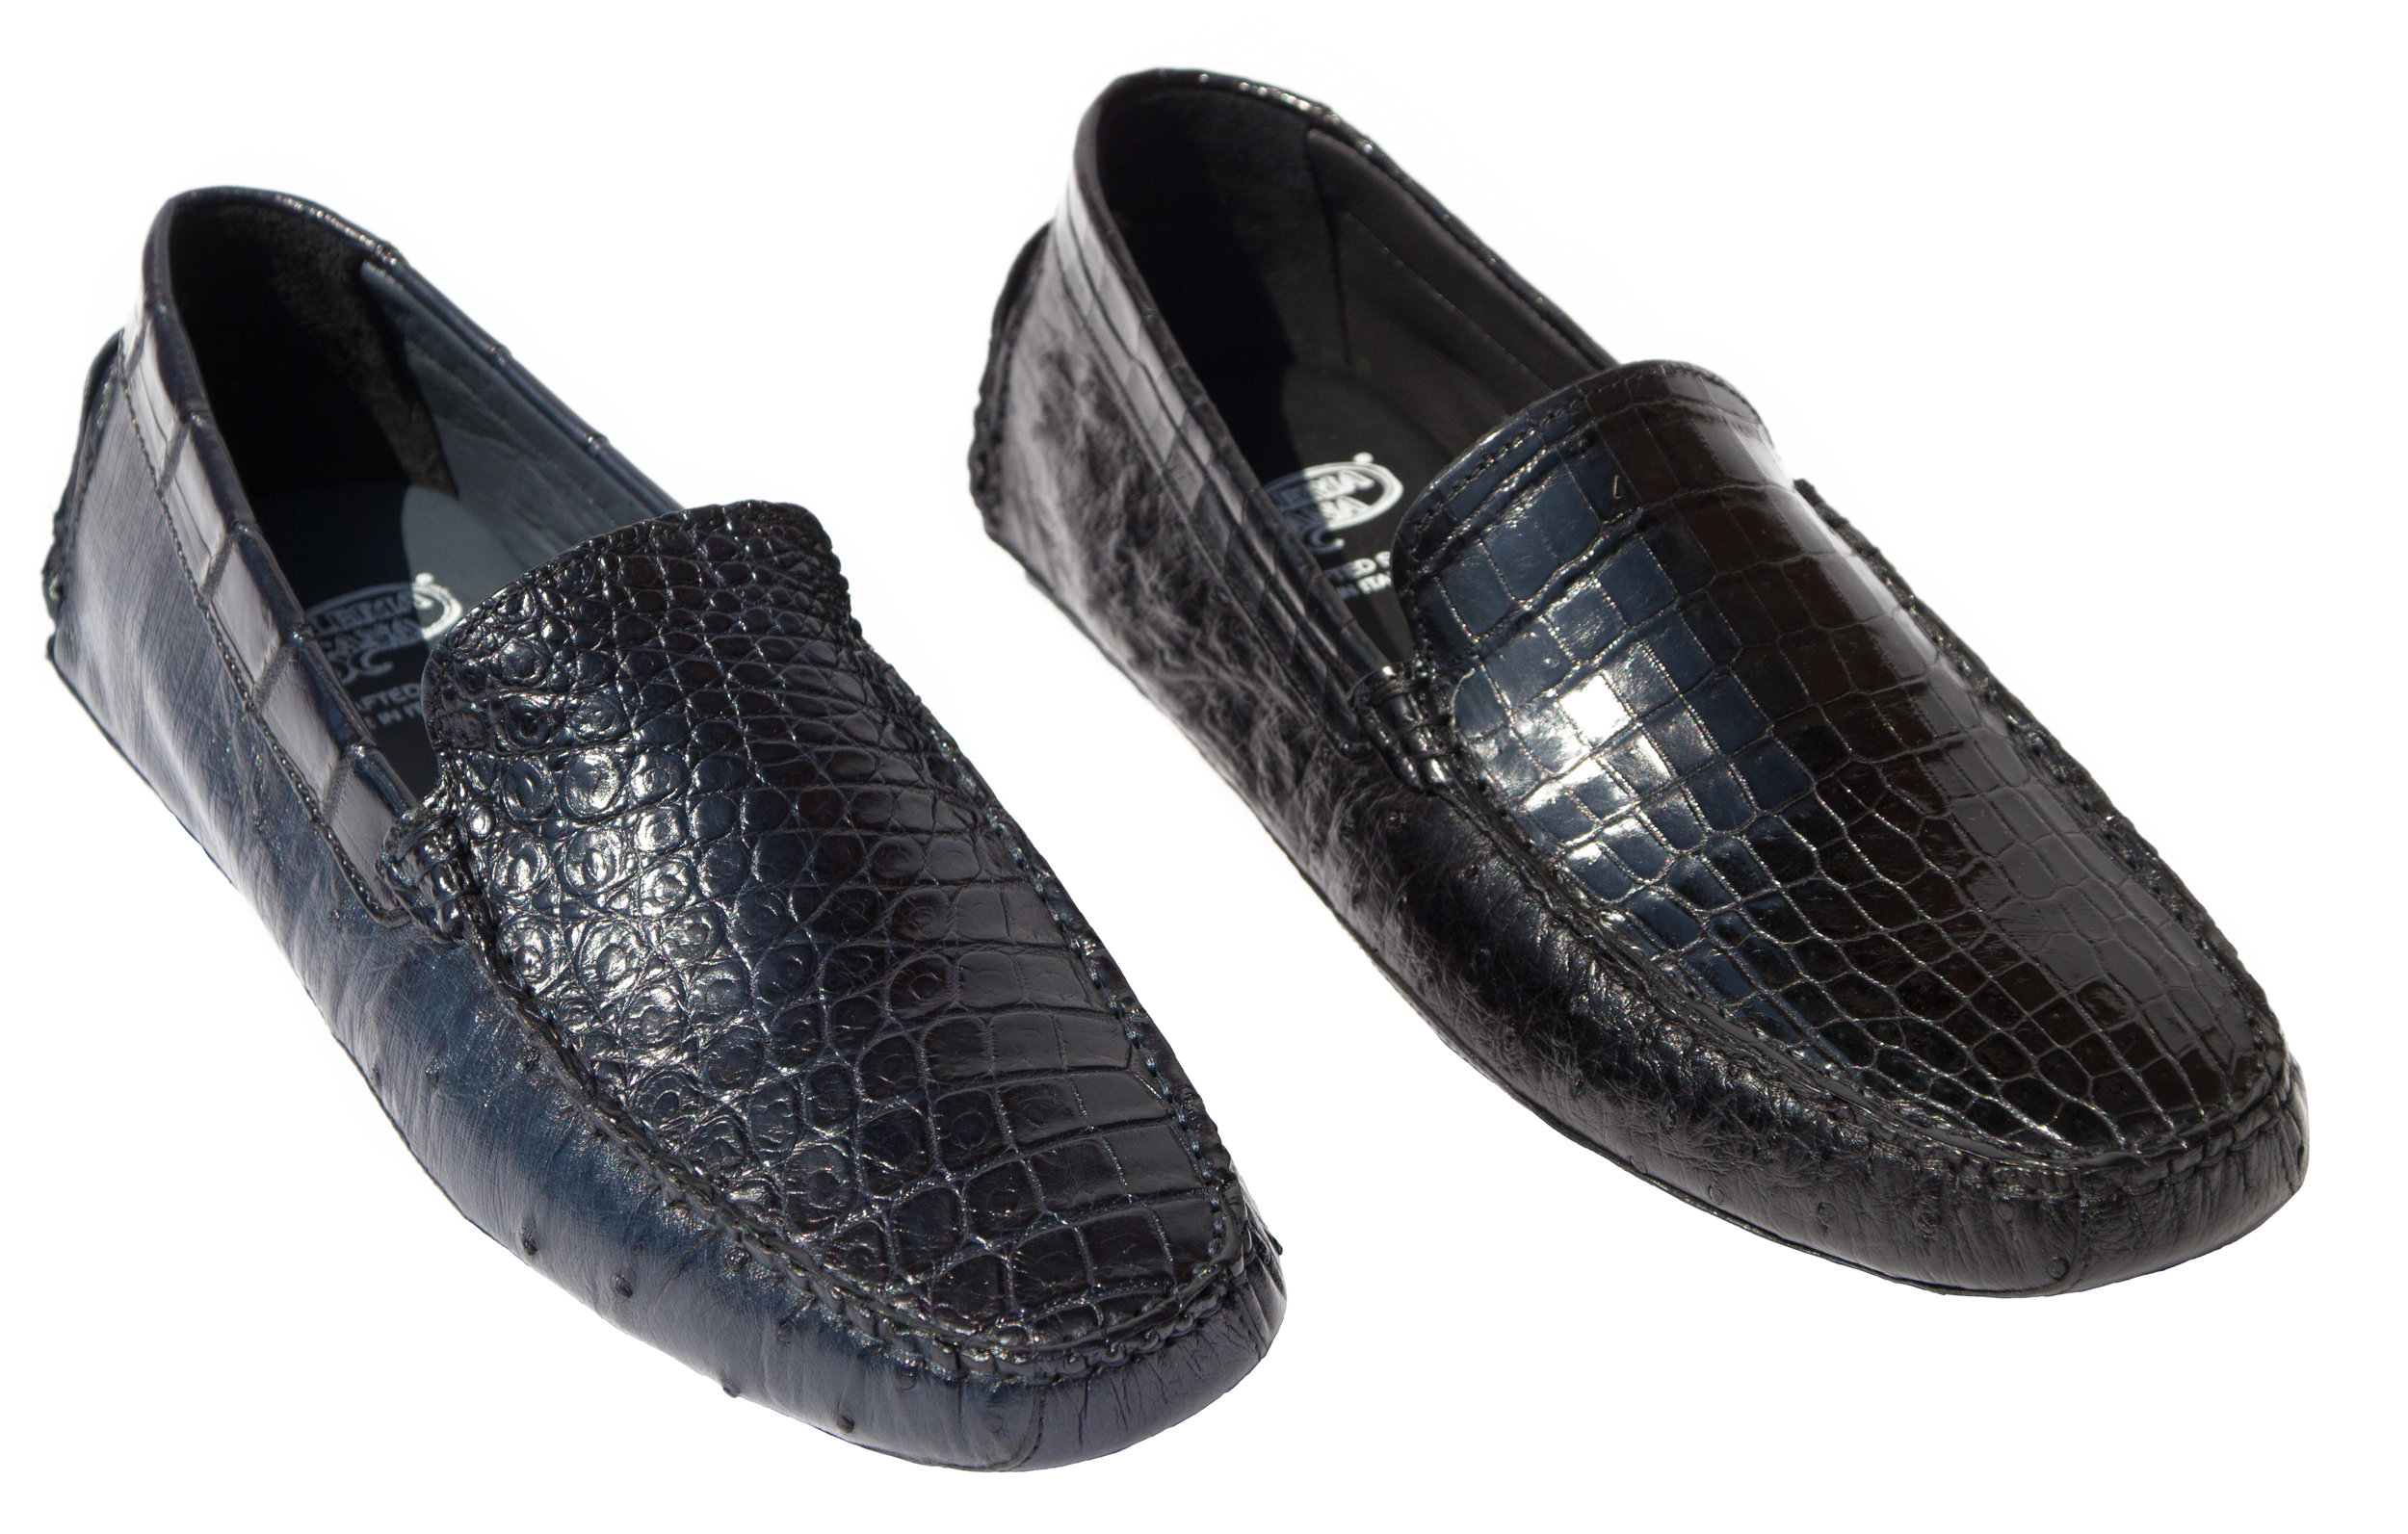 Style # 8675: Navy, Black,   Ostrich Quill /Baby Nile Crocodile Driver  Sizes available: 9   to 14 US, including half sizes